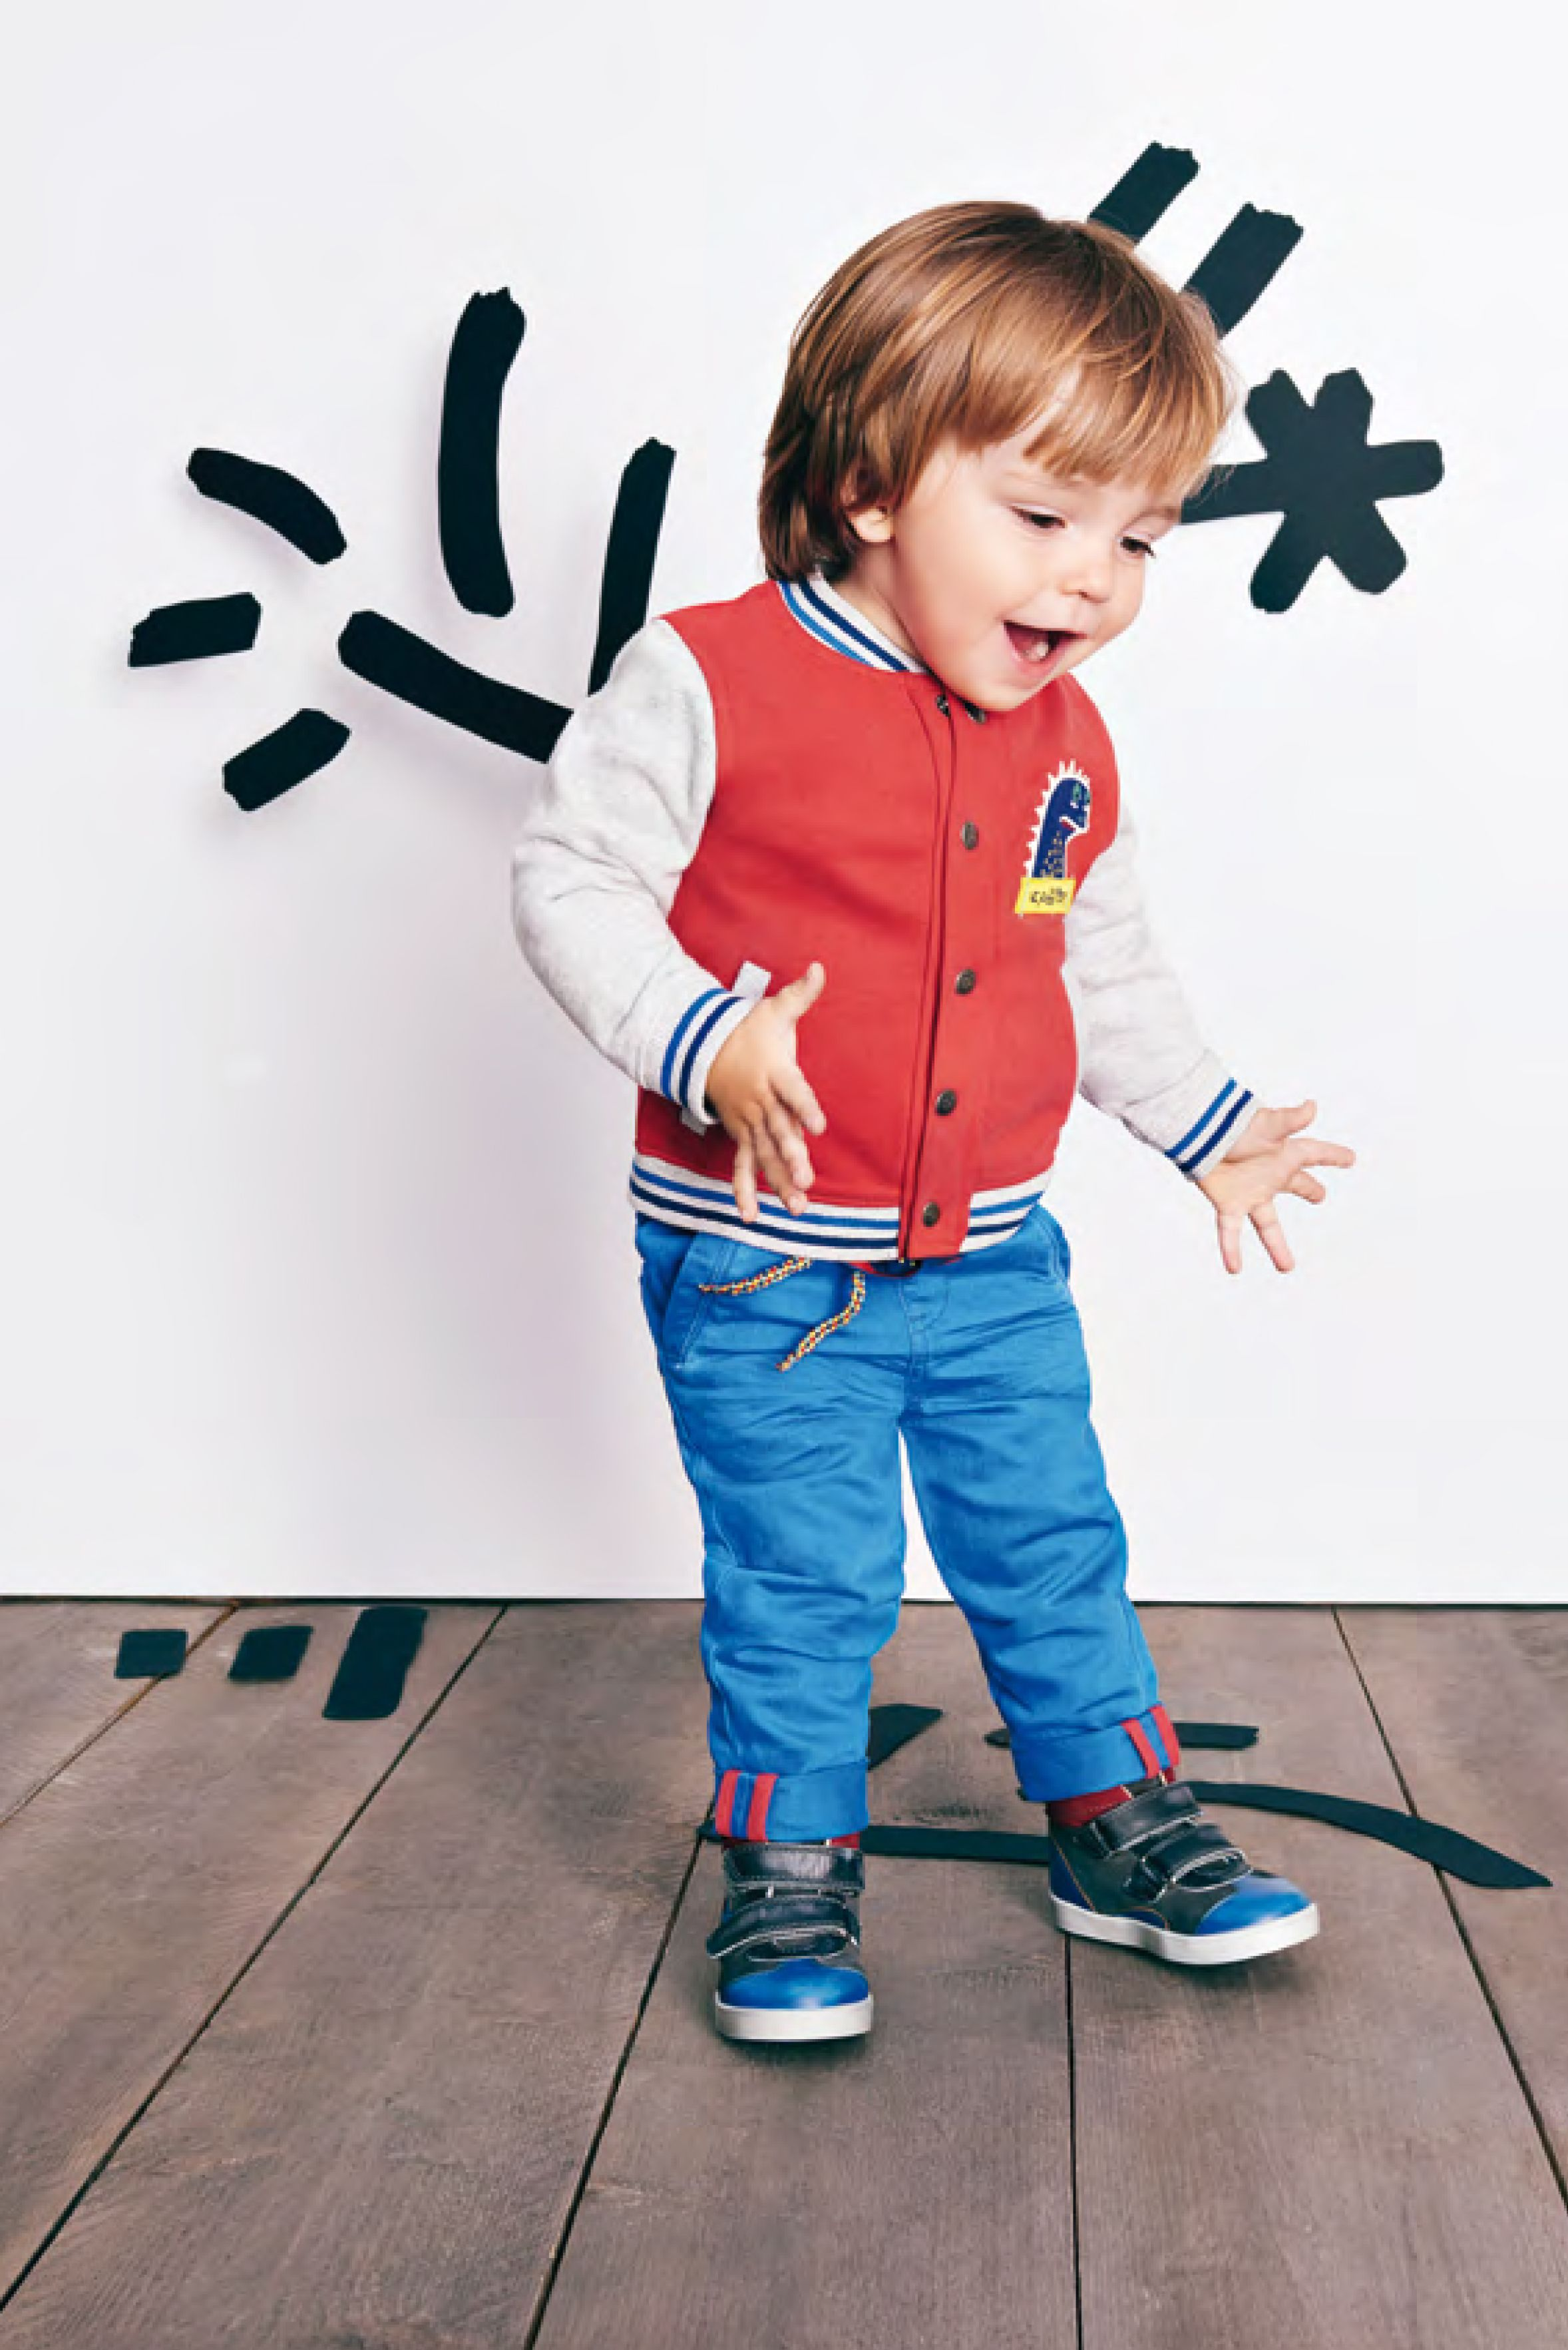 1a1465a619990  dpam  lookbook  tendance  hiver  collection  mode  garcon  enfant  trend   winter  fashion  boy  kid  outfit